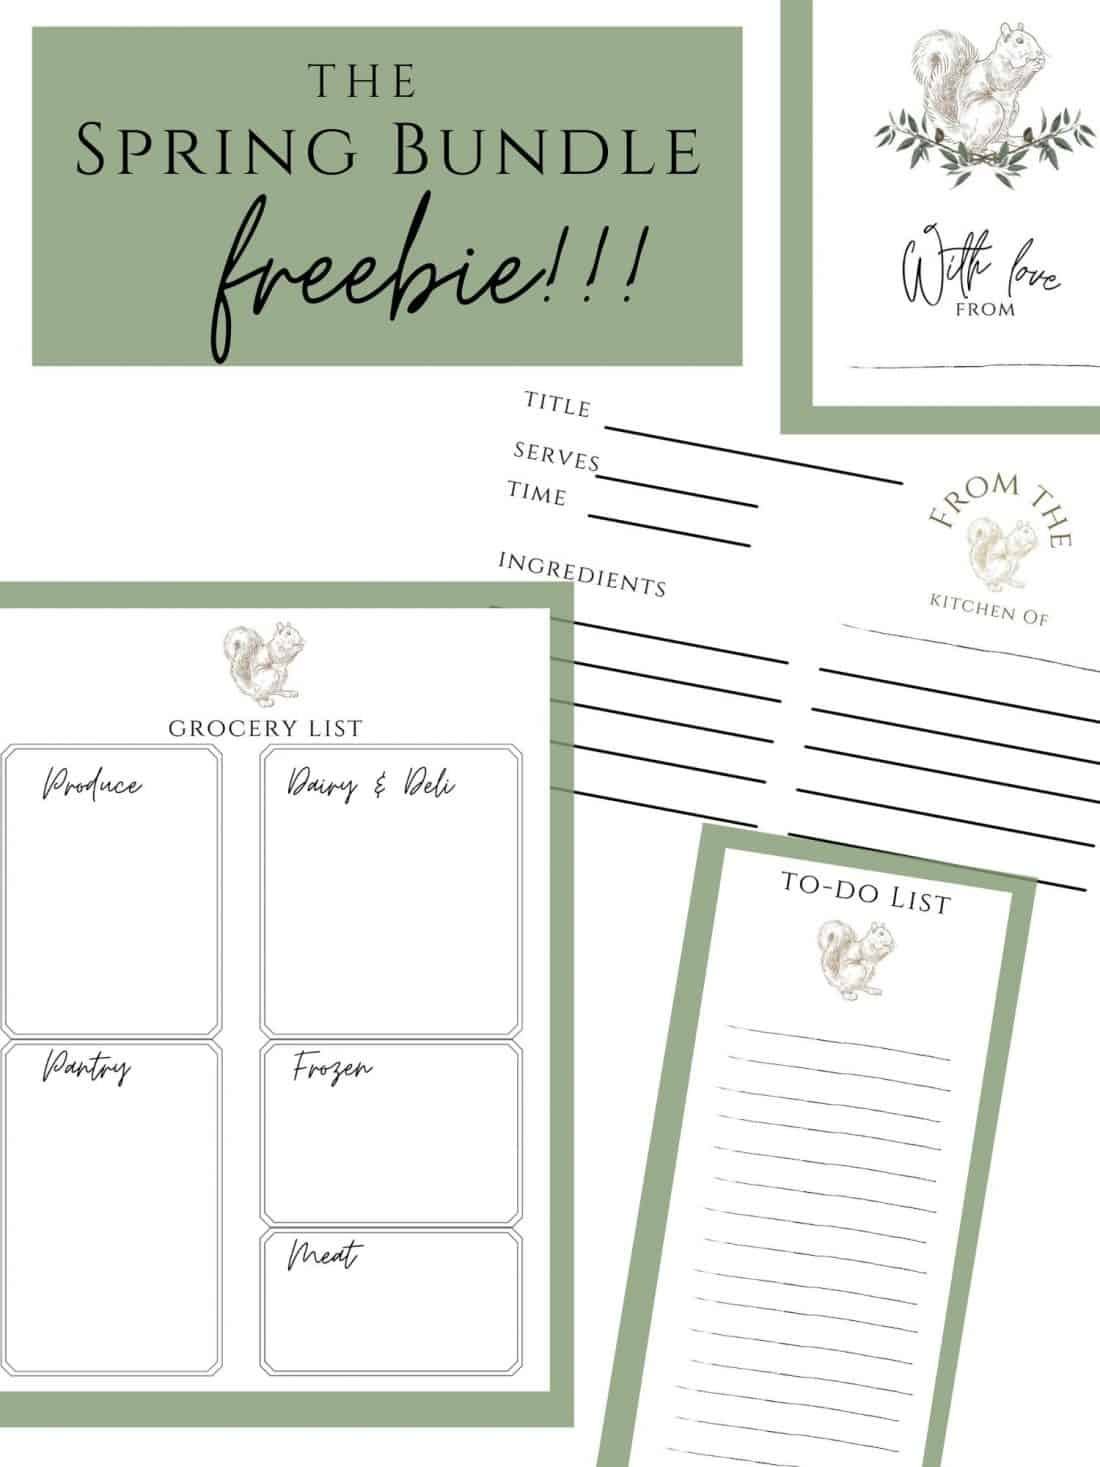 spring bundle freebies recipe card to-do list grocery list